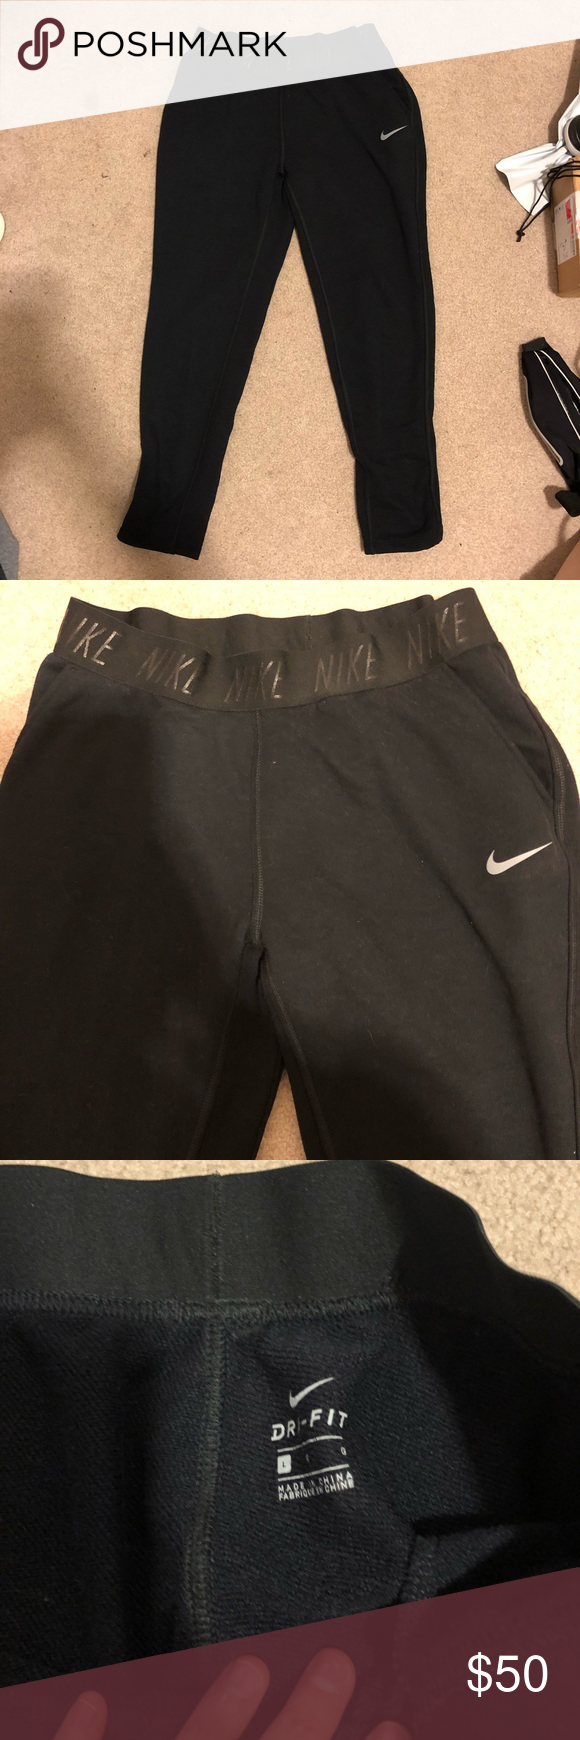 786588d6ccea Nike sweatpants Black. Worn only a couple times. Loved them